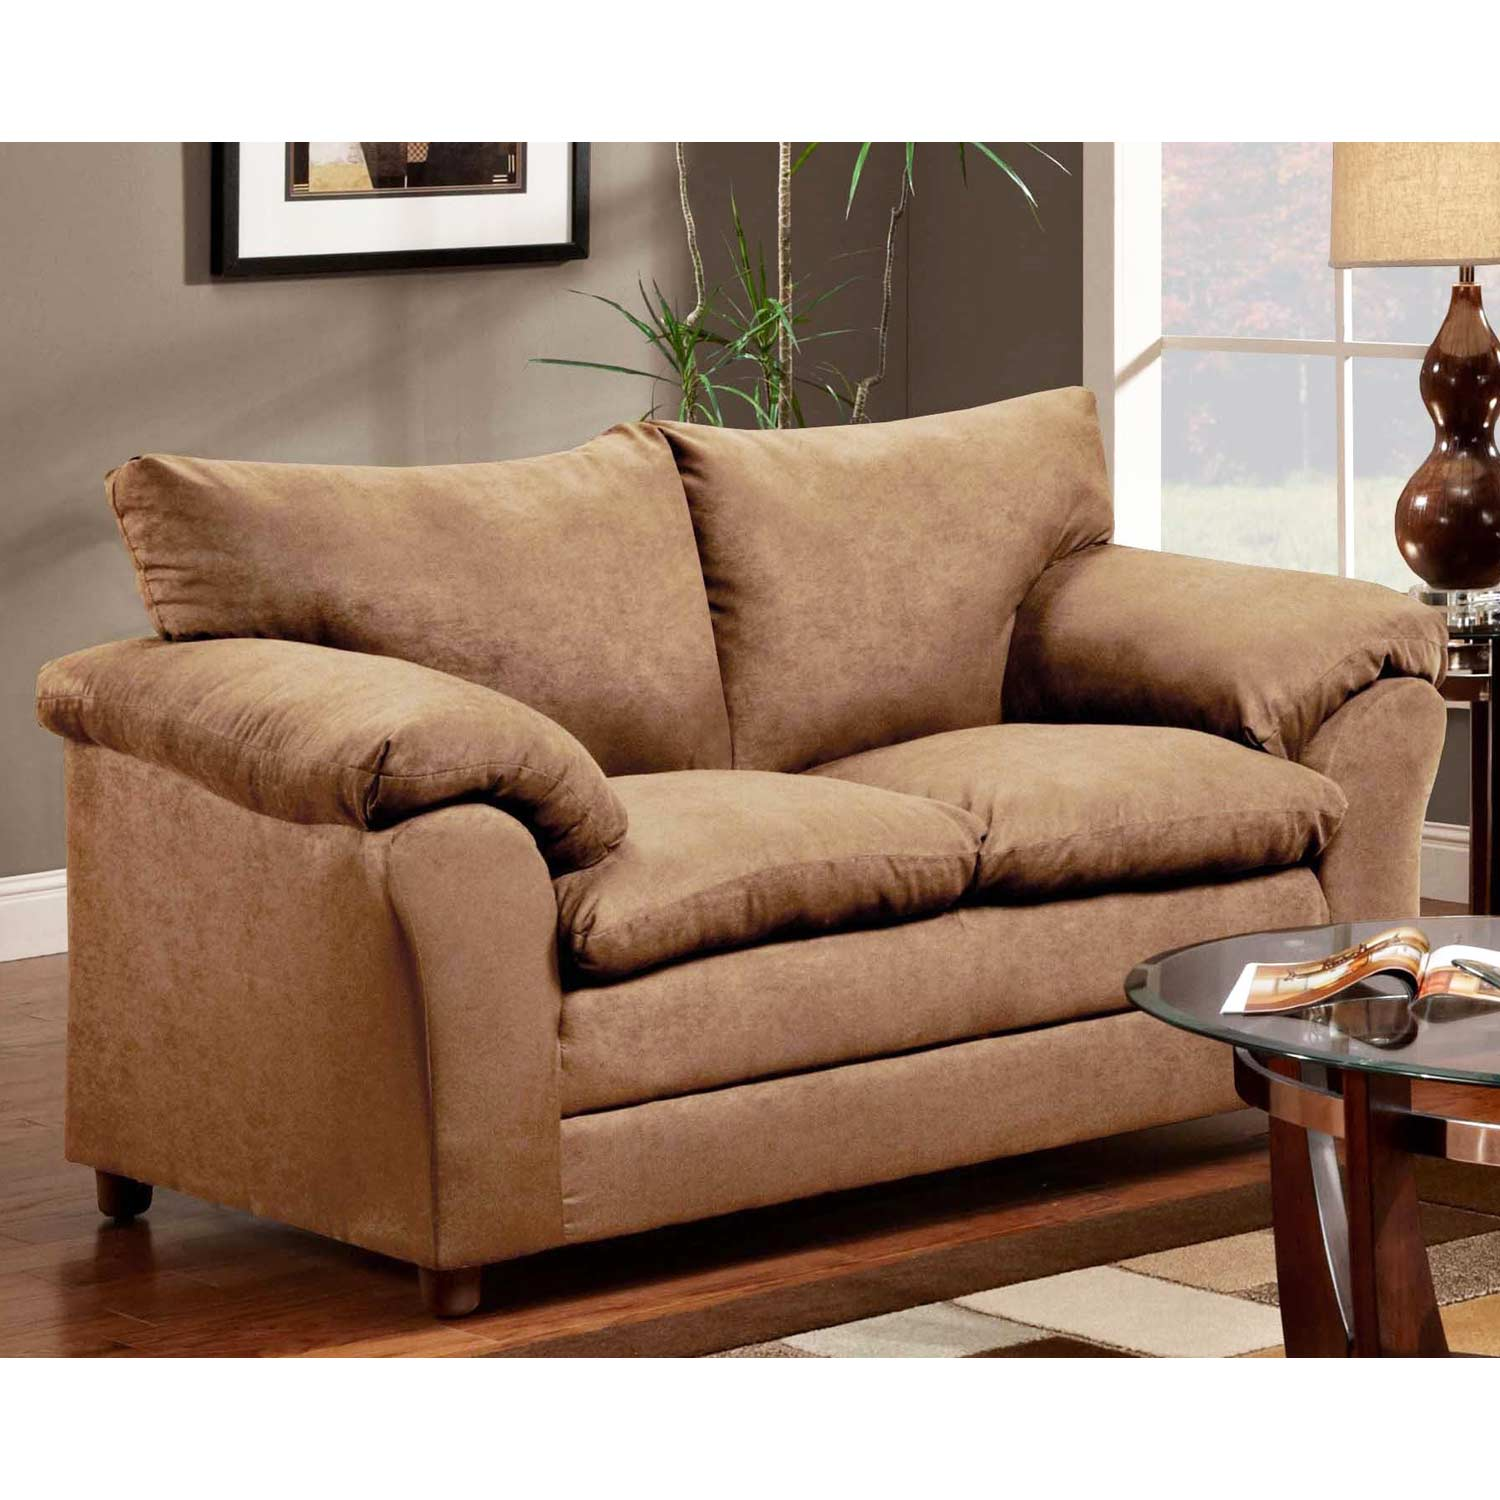 Gail Pillow Top Arm Loveseat Victory Lane Taupe Dcg Stores